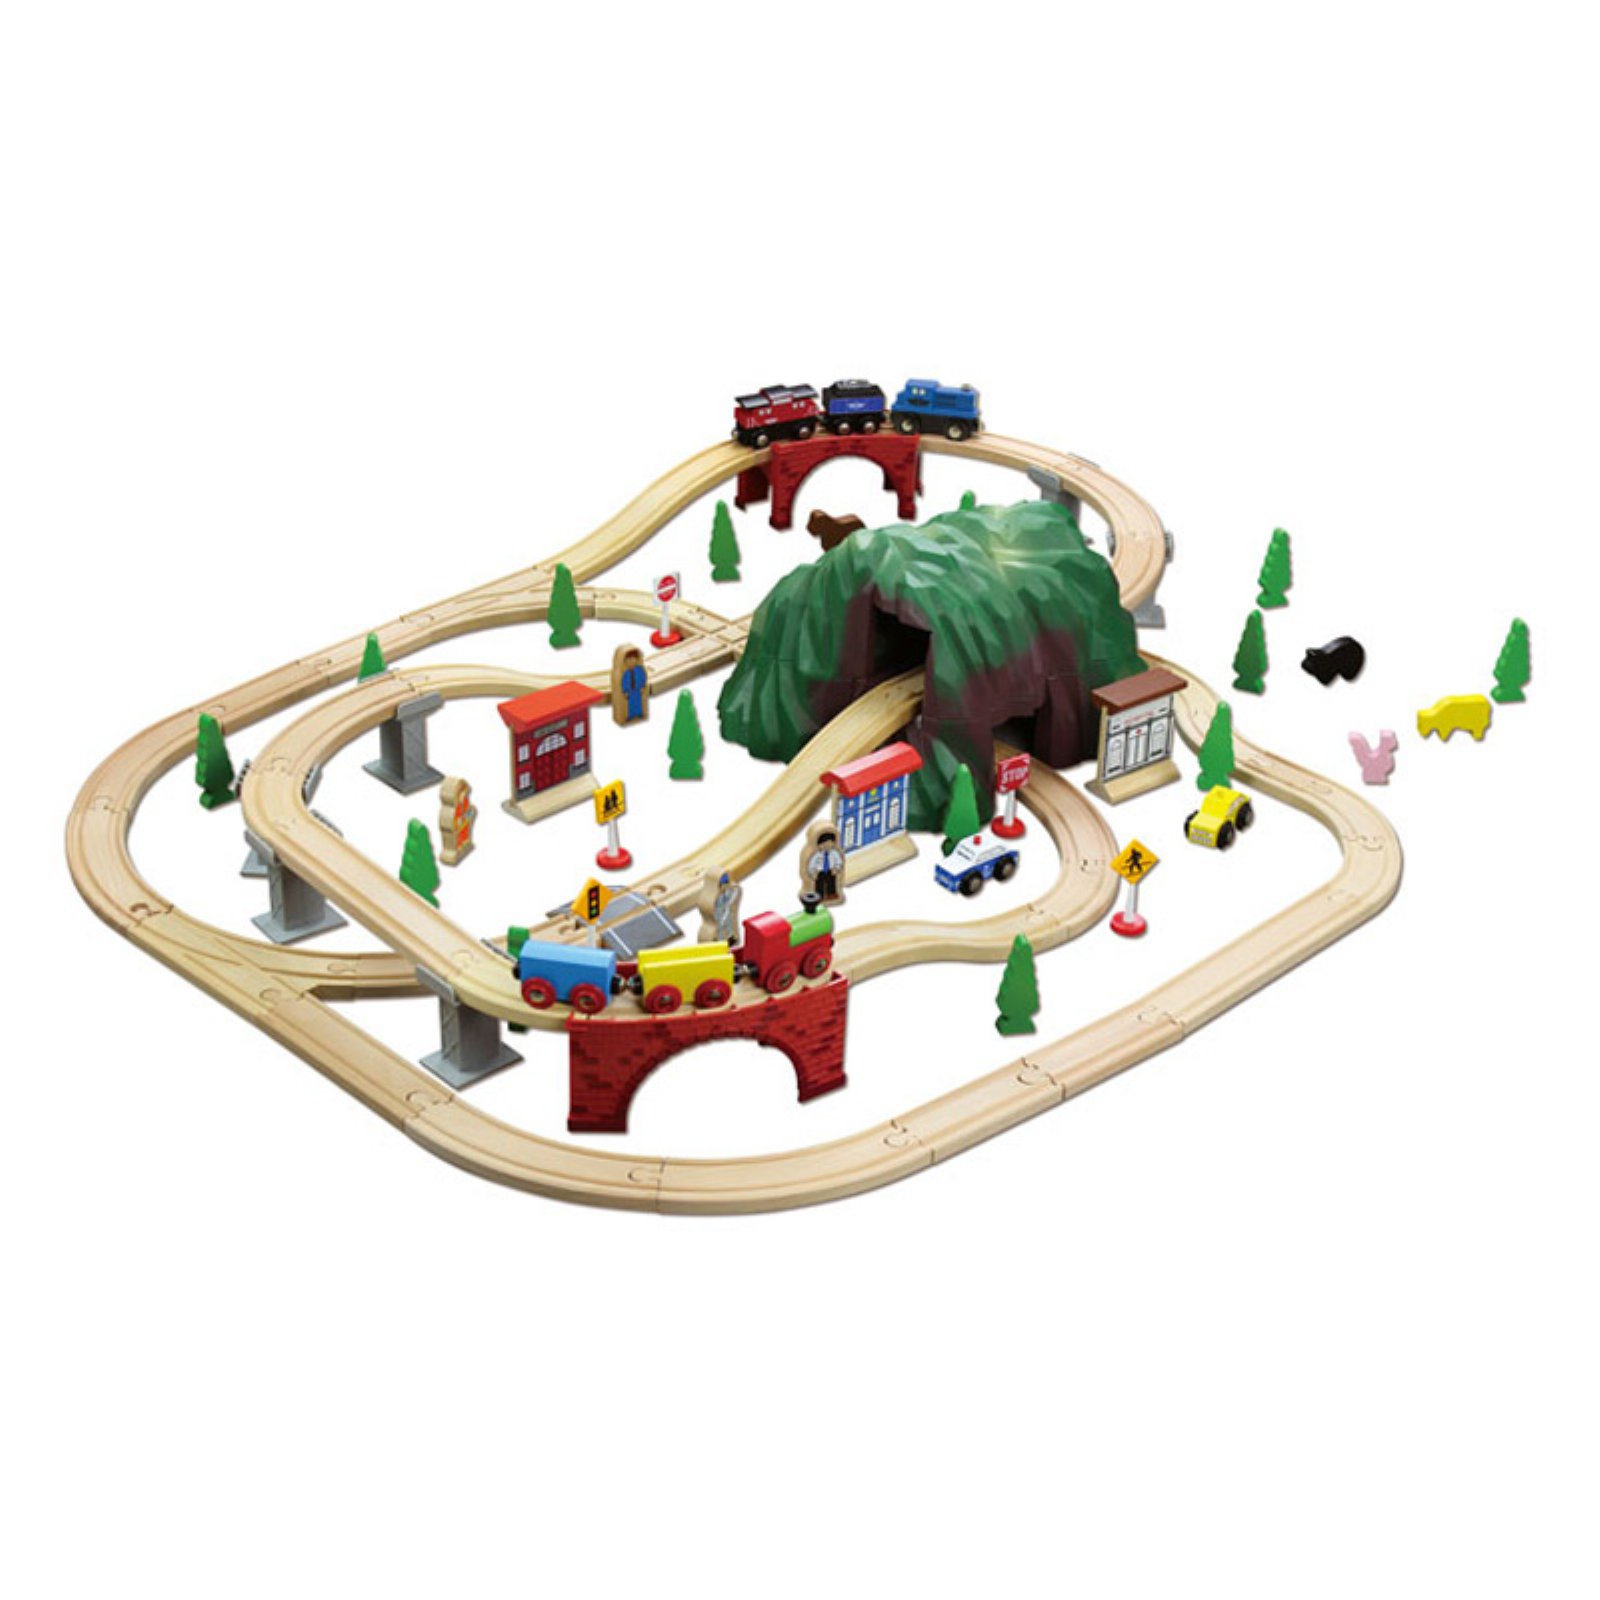 100-Piece Mountain Wooden Train Set